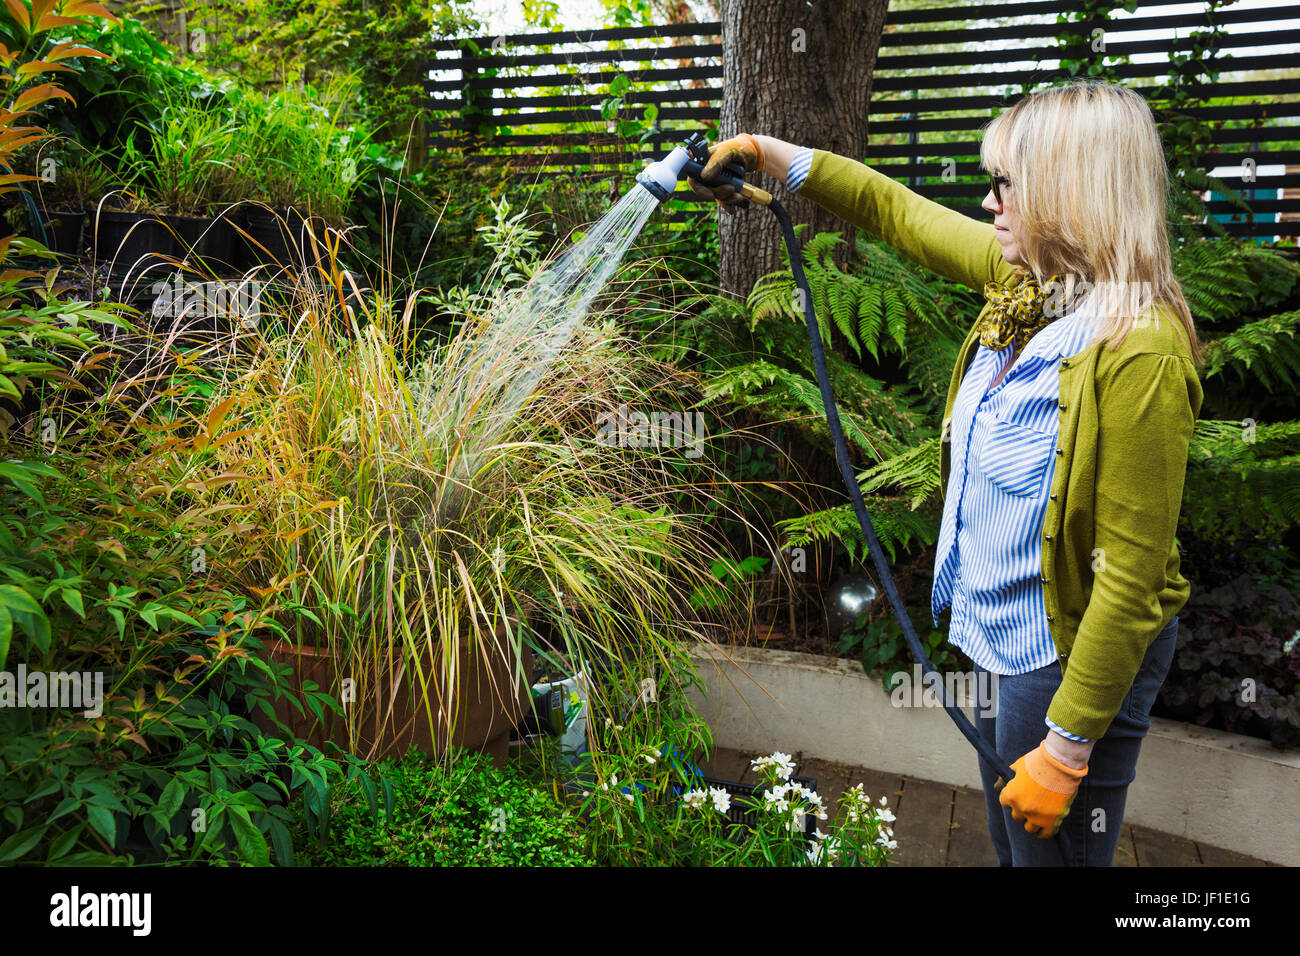 Woman standing in a garden, watering a plant in a pot using a hosepipe with spray attachment. - Stock Image